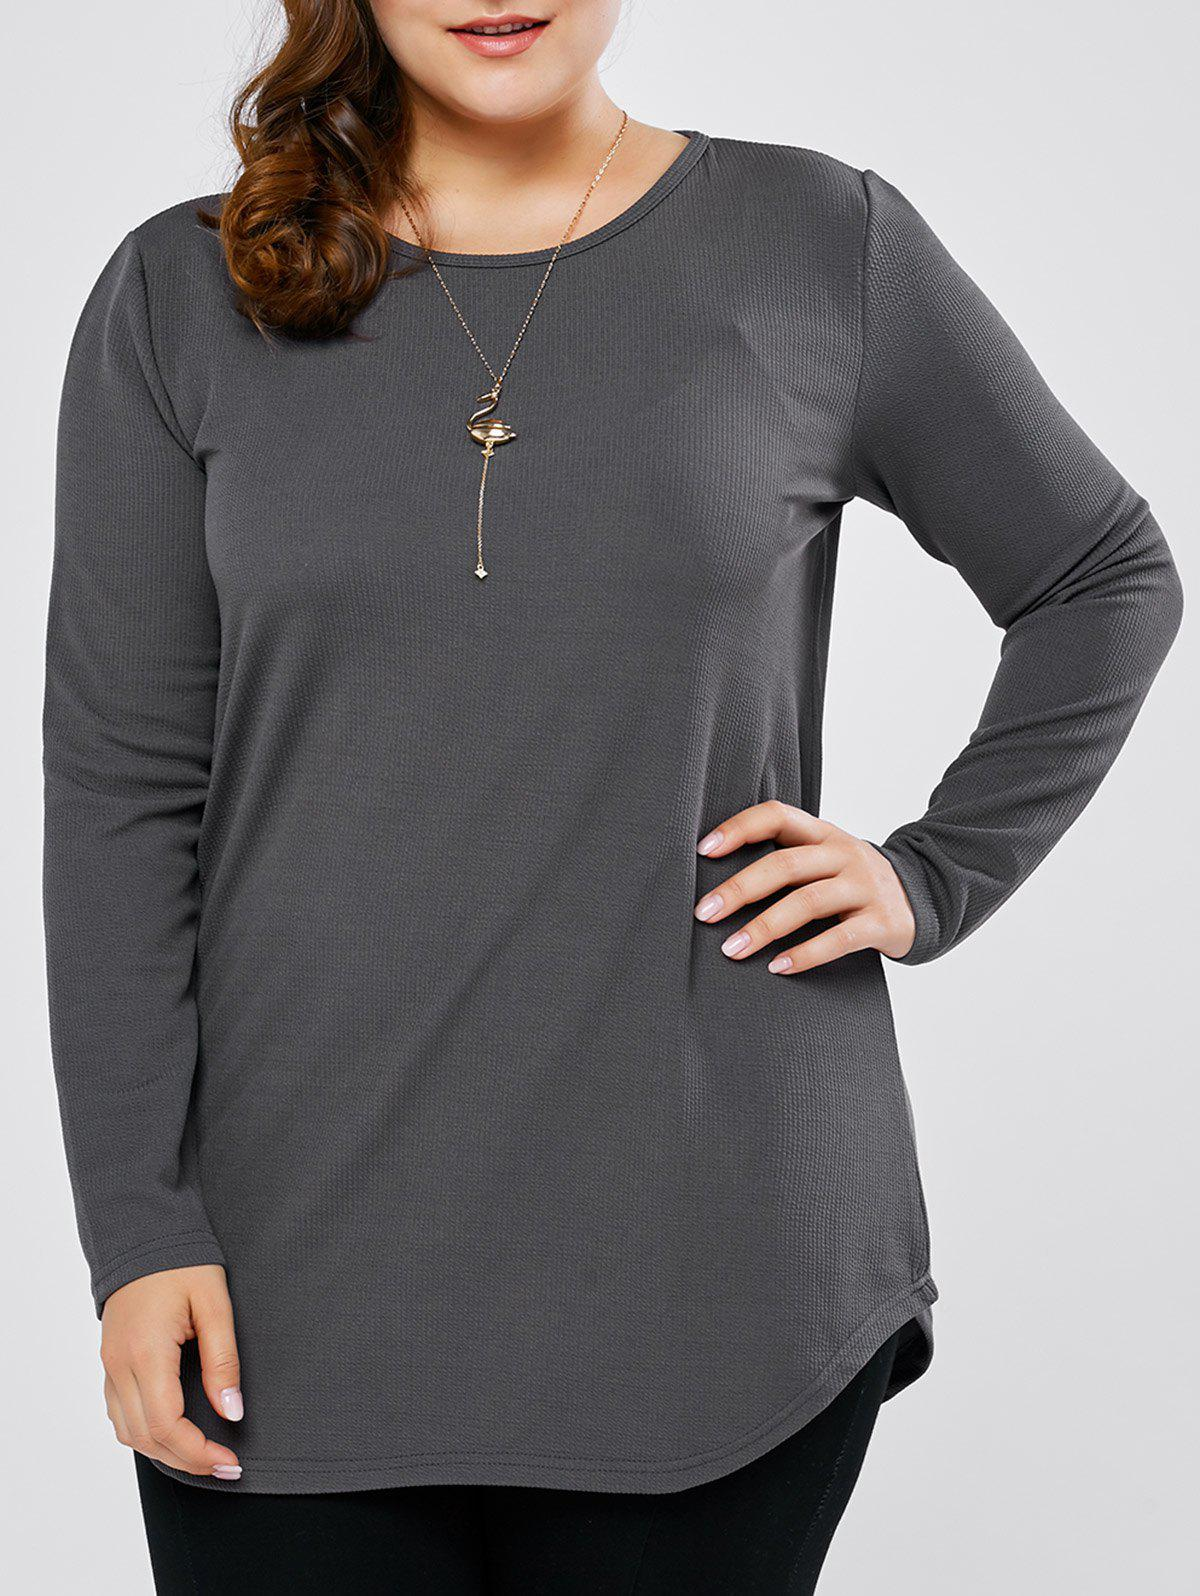 Plus Size Round Neck Long Sleeve Tee - GRAY 2XL